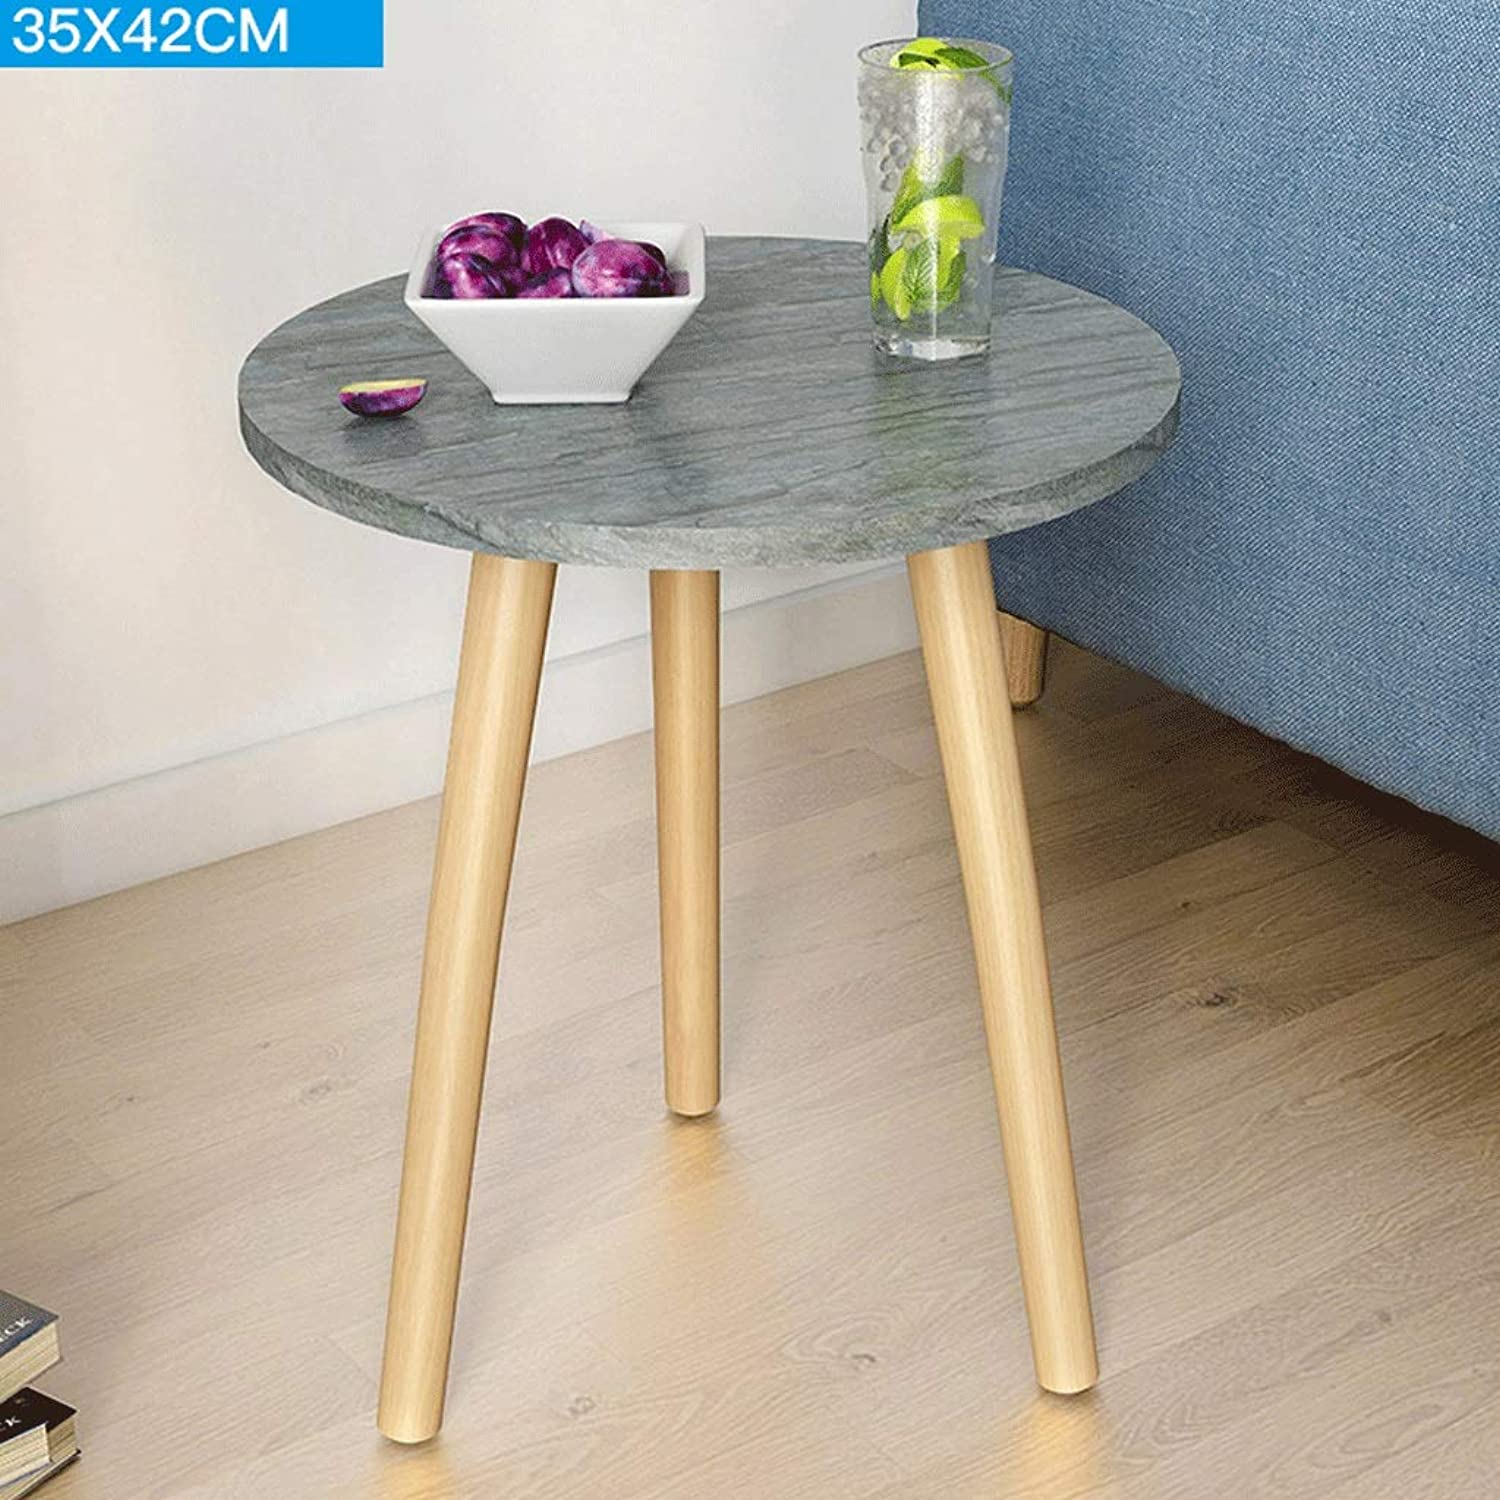 Coffee Table, Wood Grain Paper Small Round Coffee Table Bedside Table, Sofa Side Table, Simple Corner Side Storage Small Table Solid Wood Table Legs, Multi-Function Table (color   A2, Size   35CM)